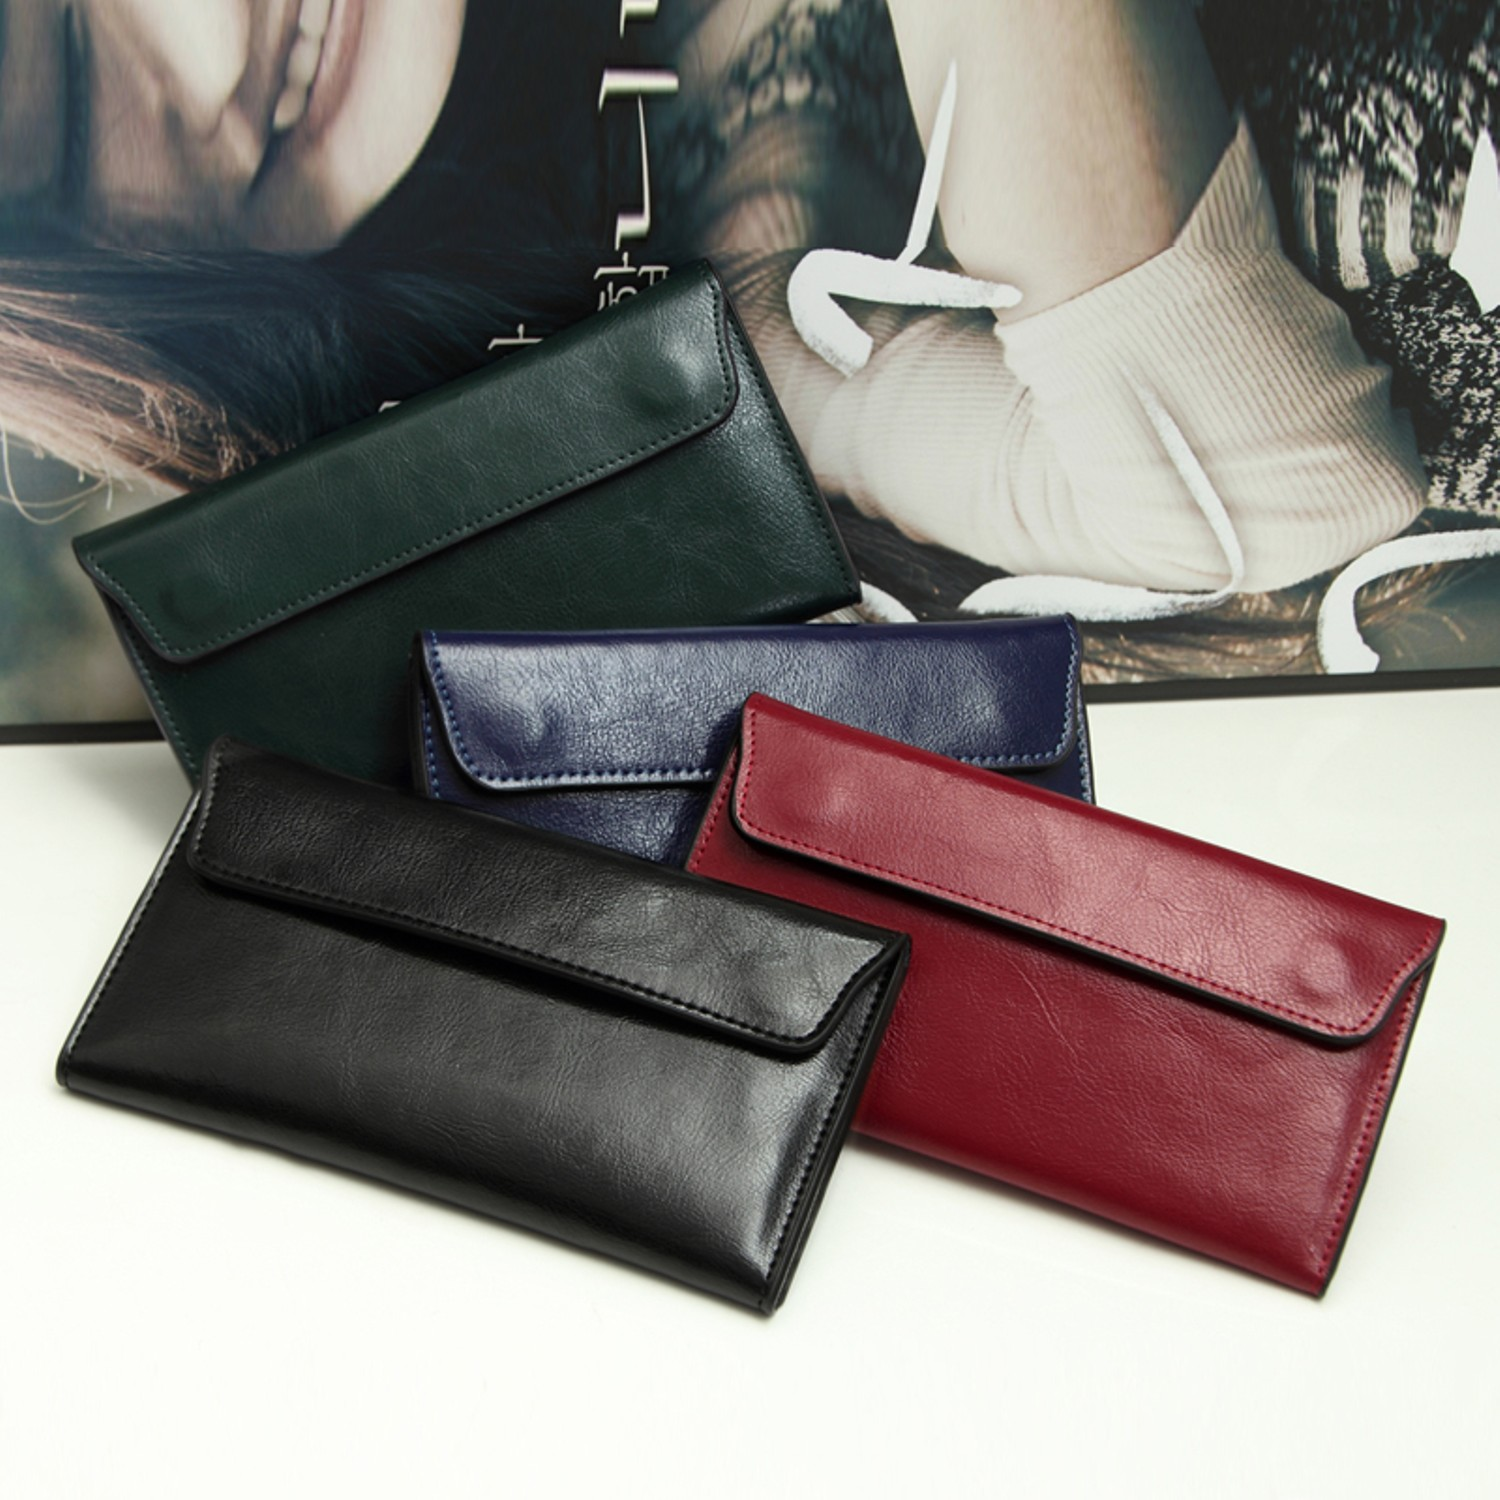 410436dc8ef3 Details about Genuine Leather Women Wallet Long Thin Purse Clutch Cowhide  Cards Holder Fashion